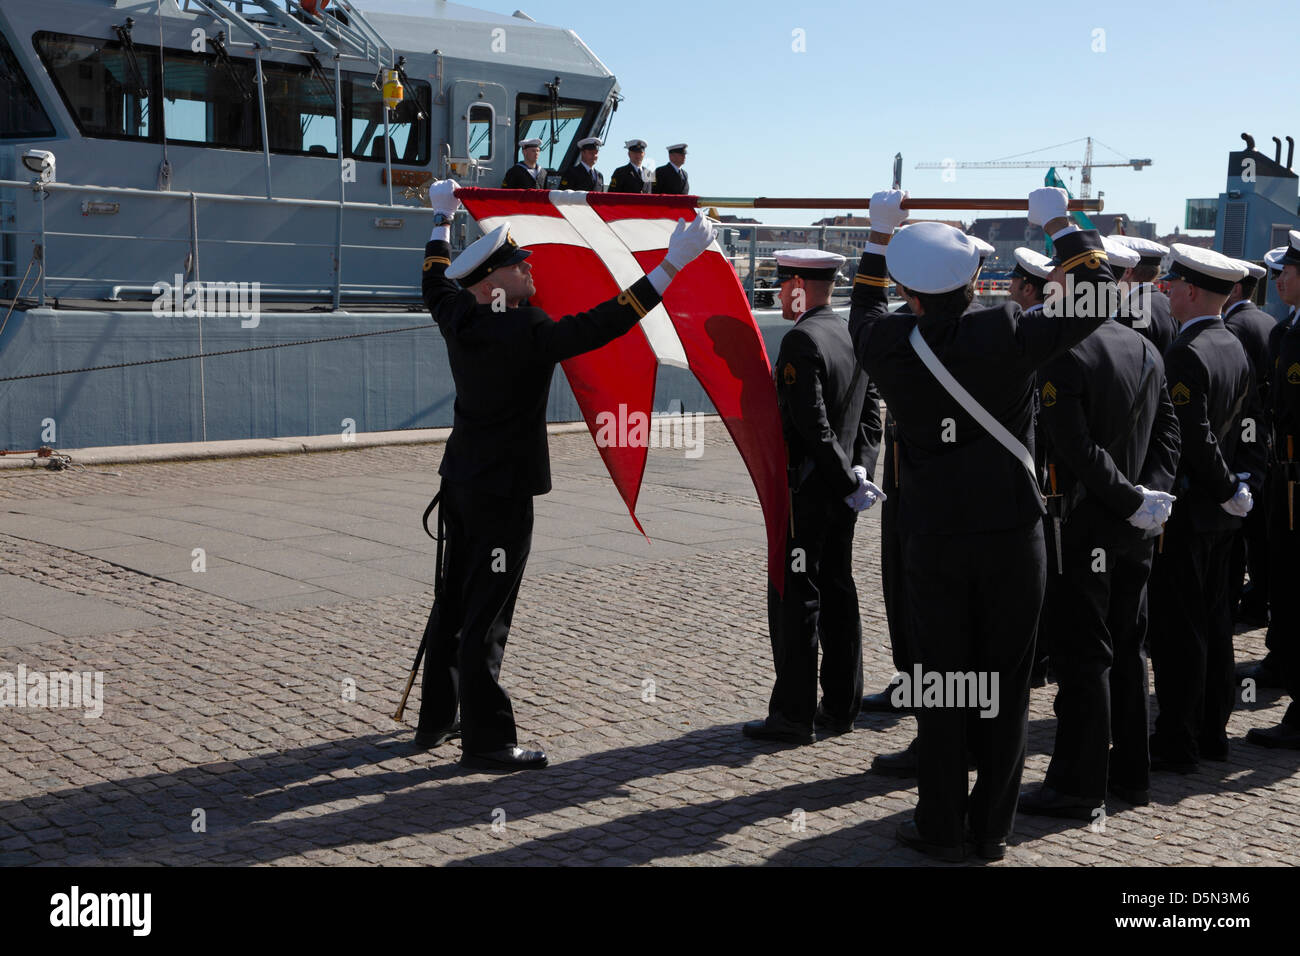 Copenhagen, Denmark. April 4th 2013. Cadets from the Royal Danish Naval Academy roll the naval flag after a parade - Stock Image